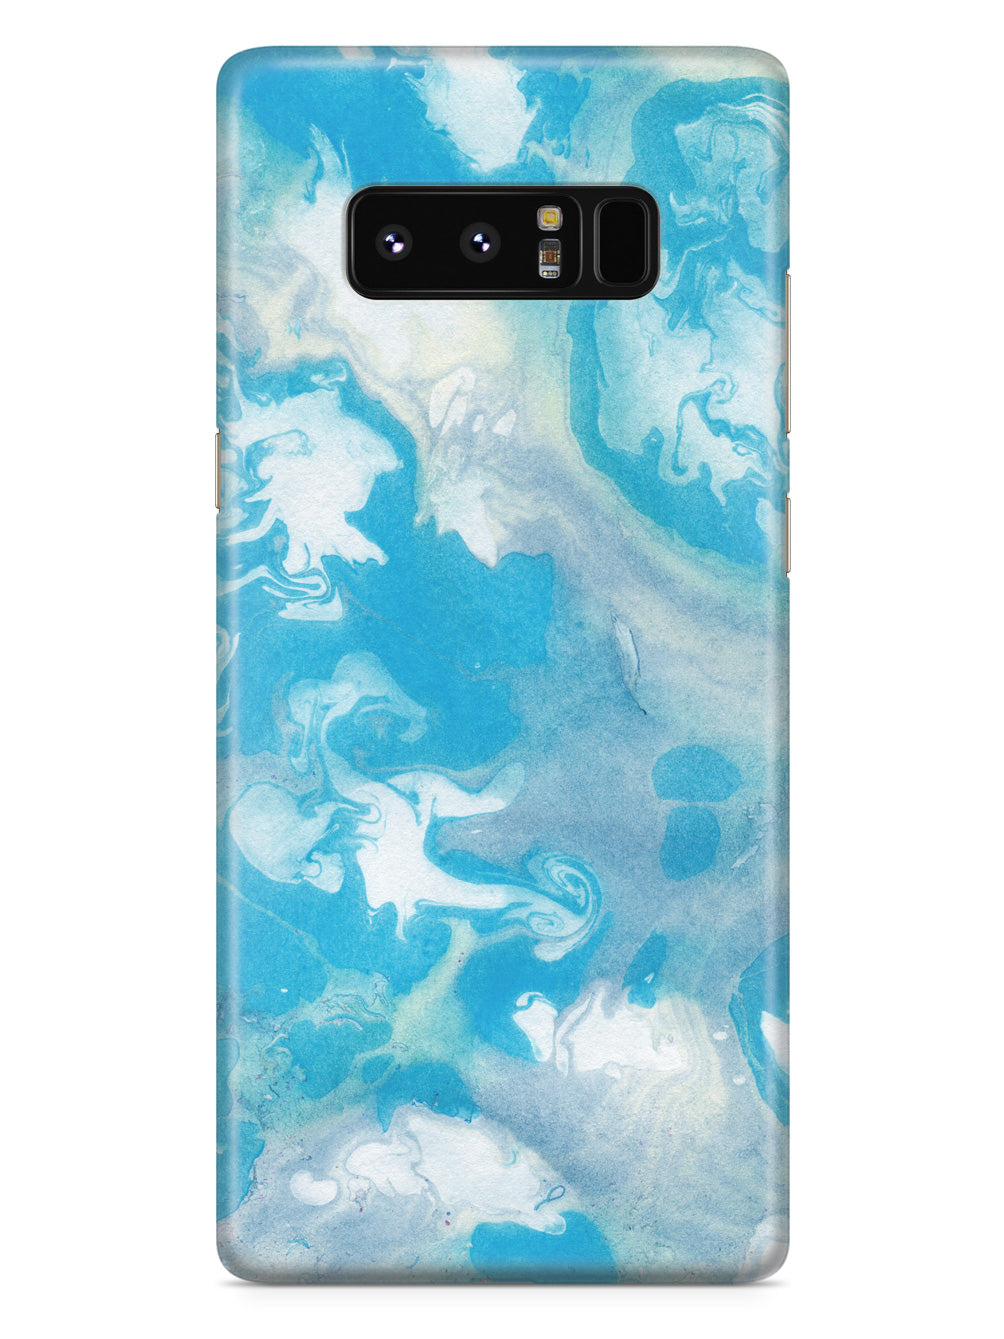 Ink Marble Elements - Blue and White Case